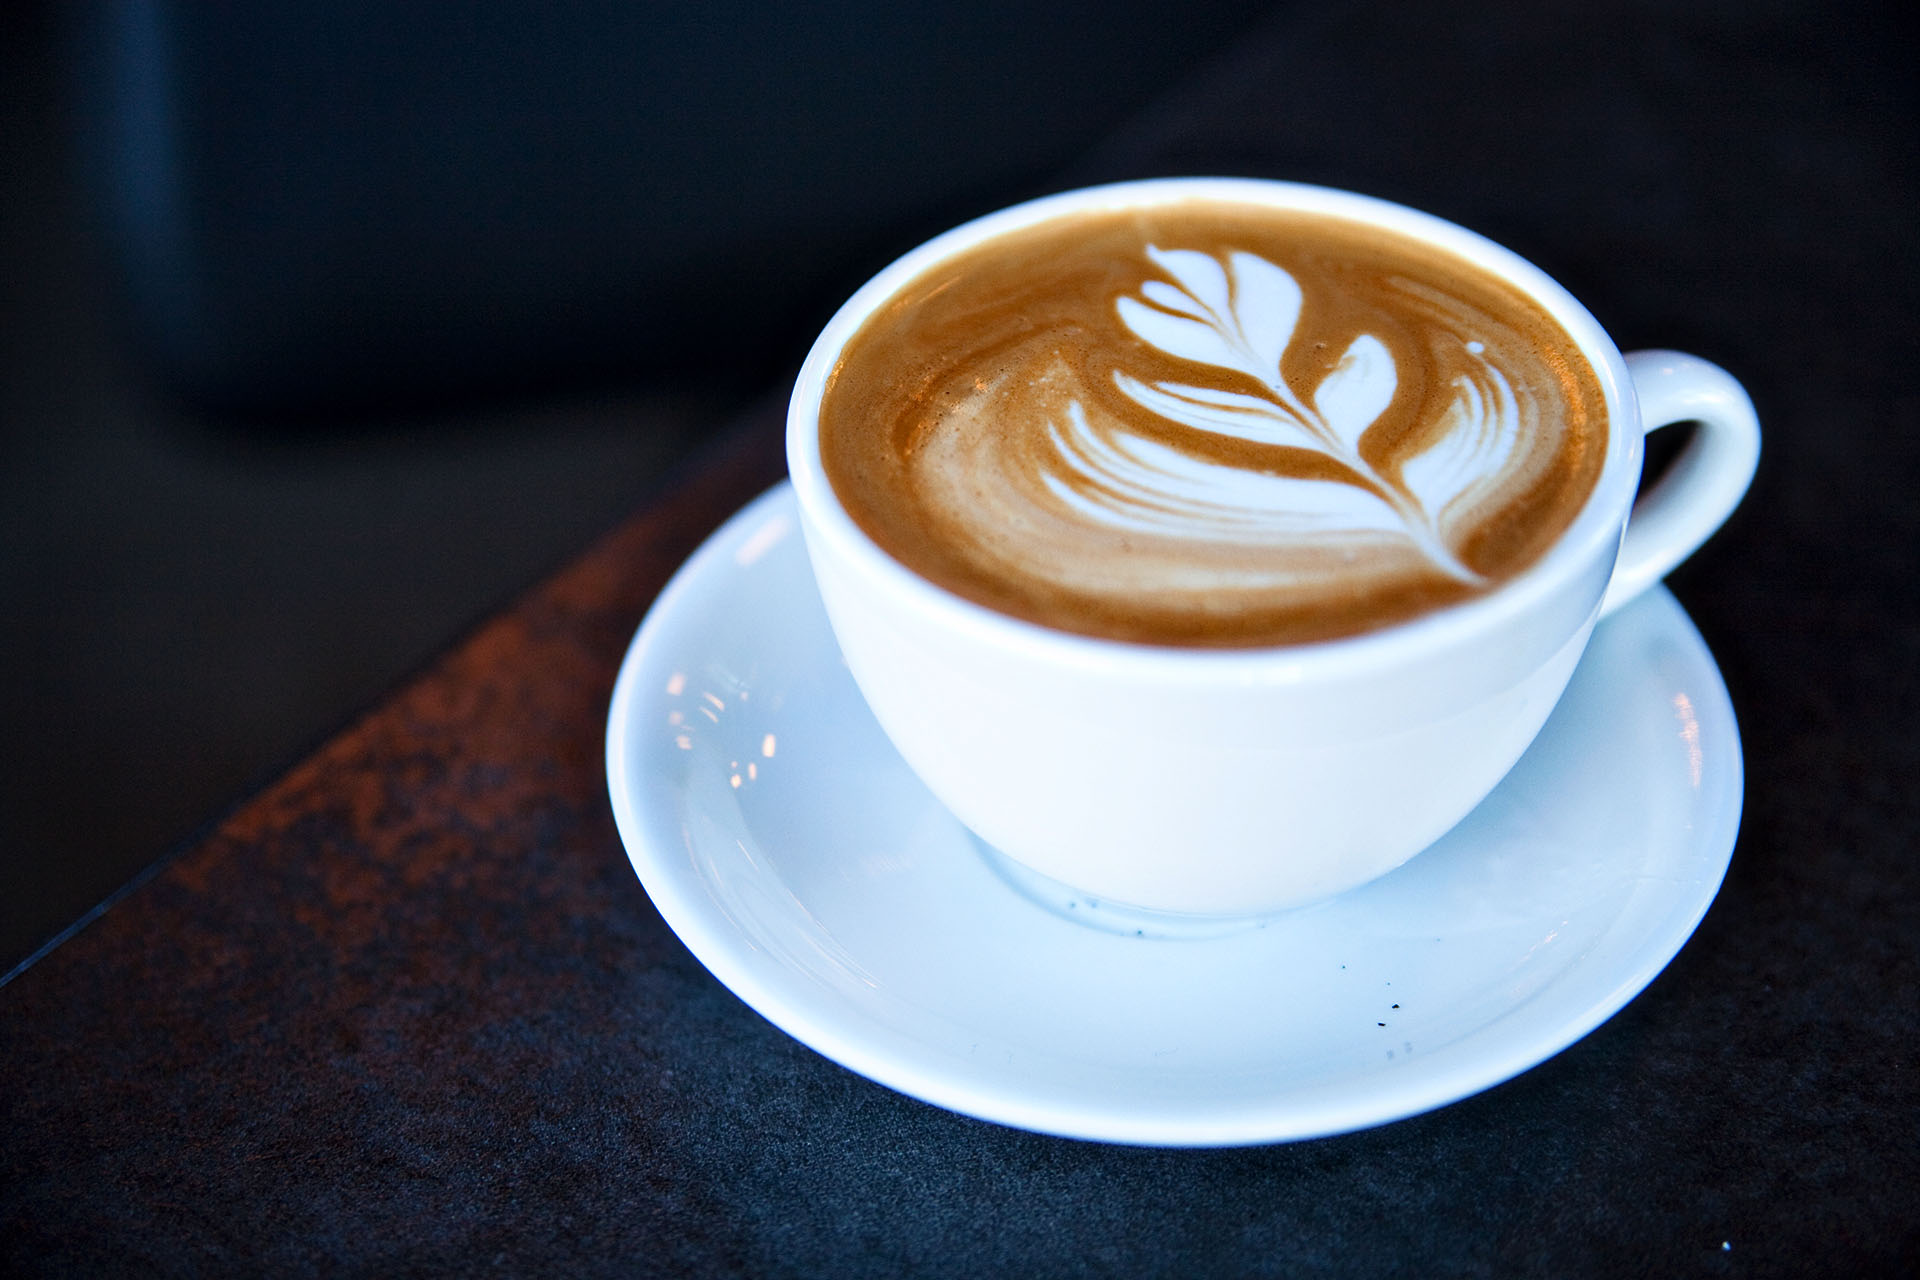 Cup Of Coffee Images: If We Were Having Coffee: Catching Up On Life